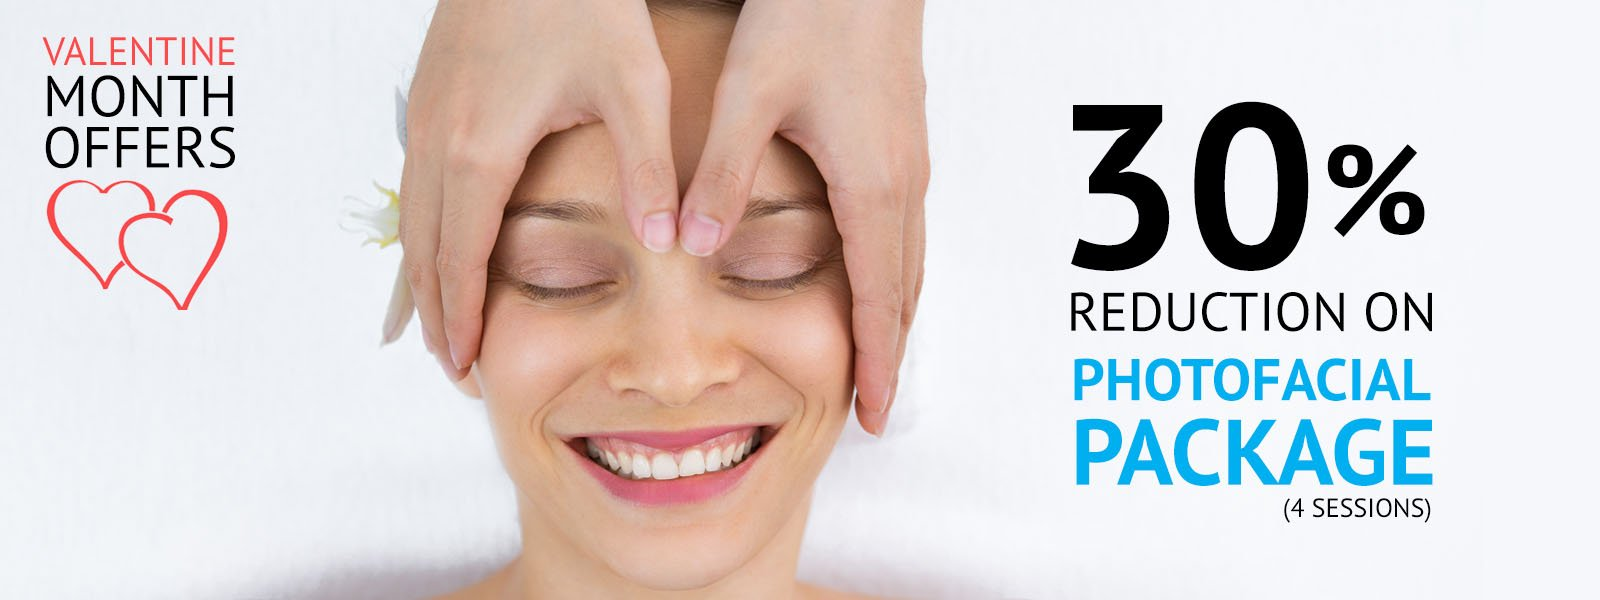 Valentine's Day Skin Clinic Offer - Photofacial